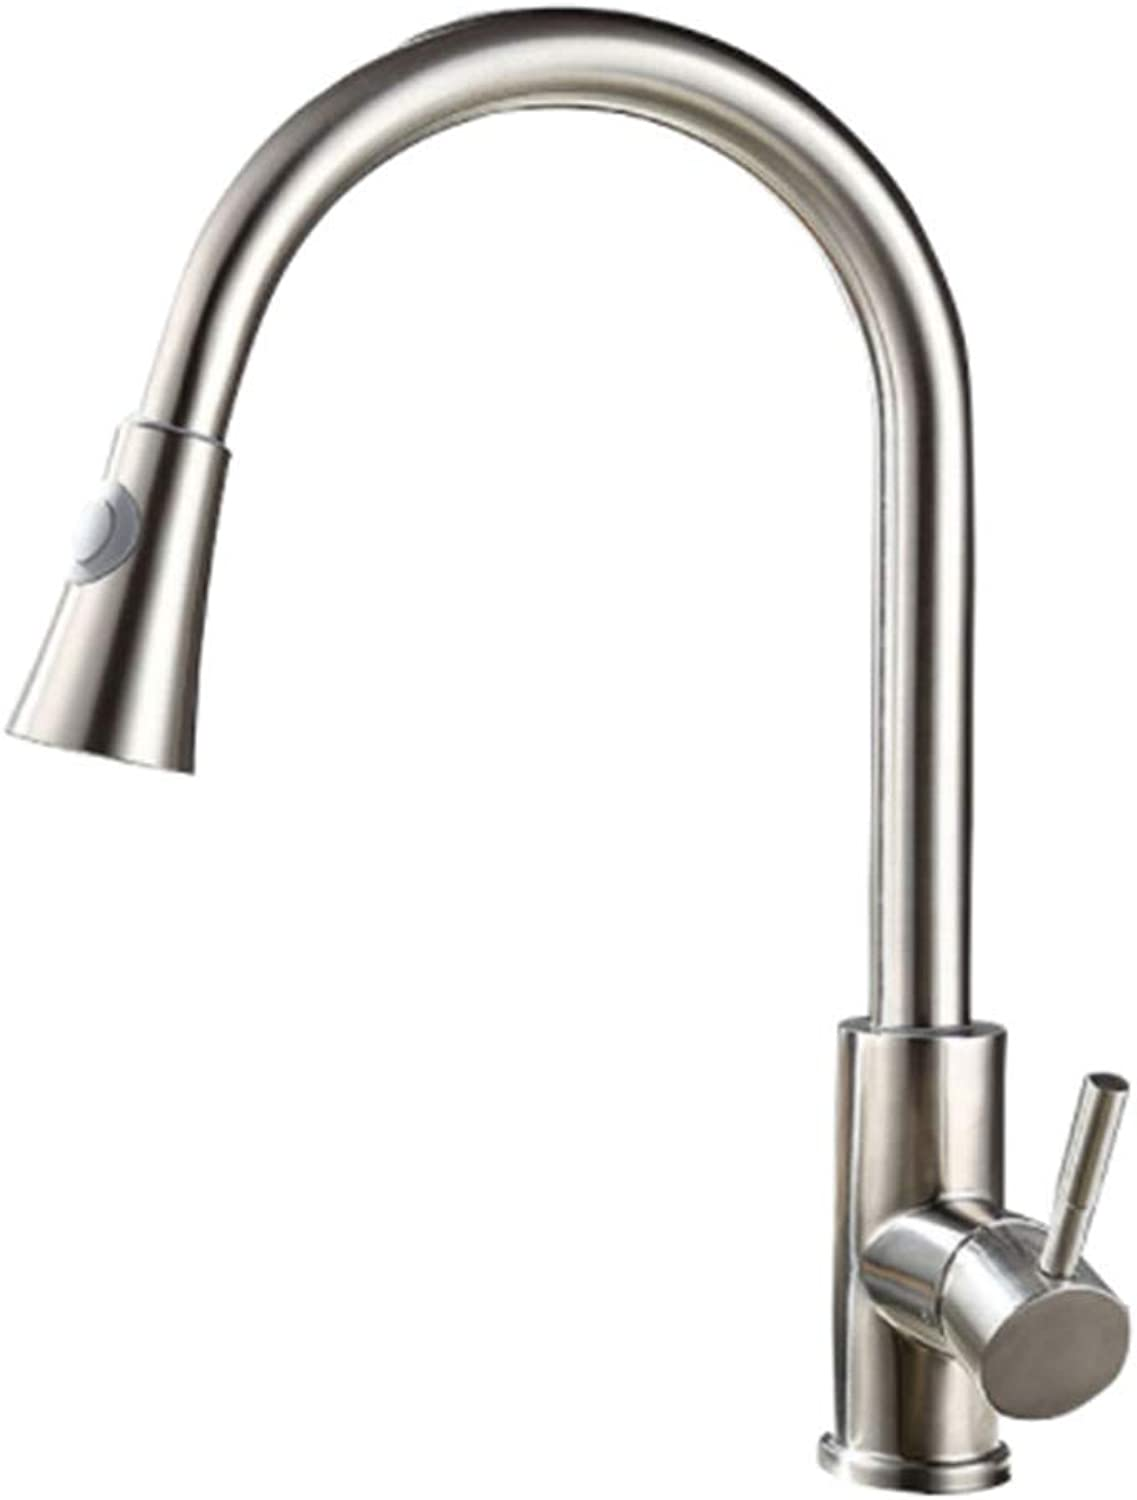 Kitchen Taps Faucetmodern Kitchen Sink Tapsstainless Steelpull Stainless Steel Kitchen Faucet Hot and Cold Kitchen Faucet Telescopic Wash Basin Sink